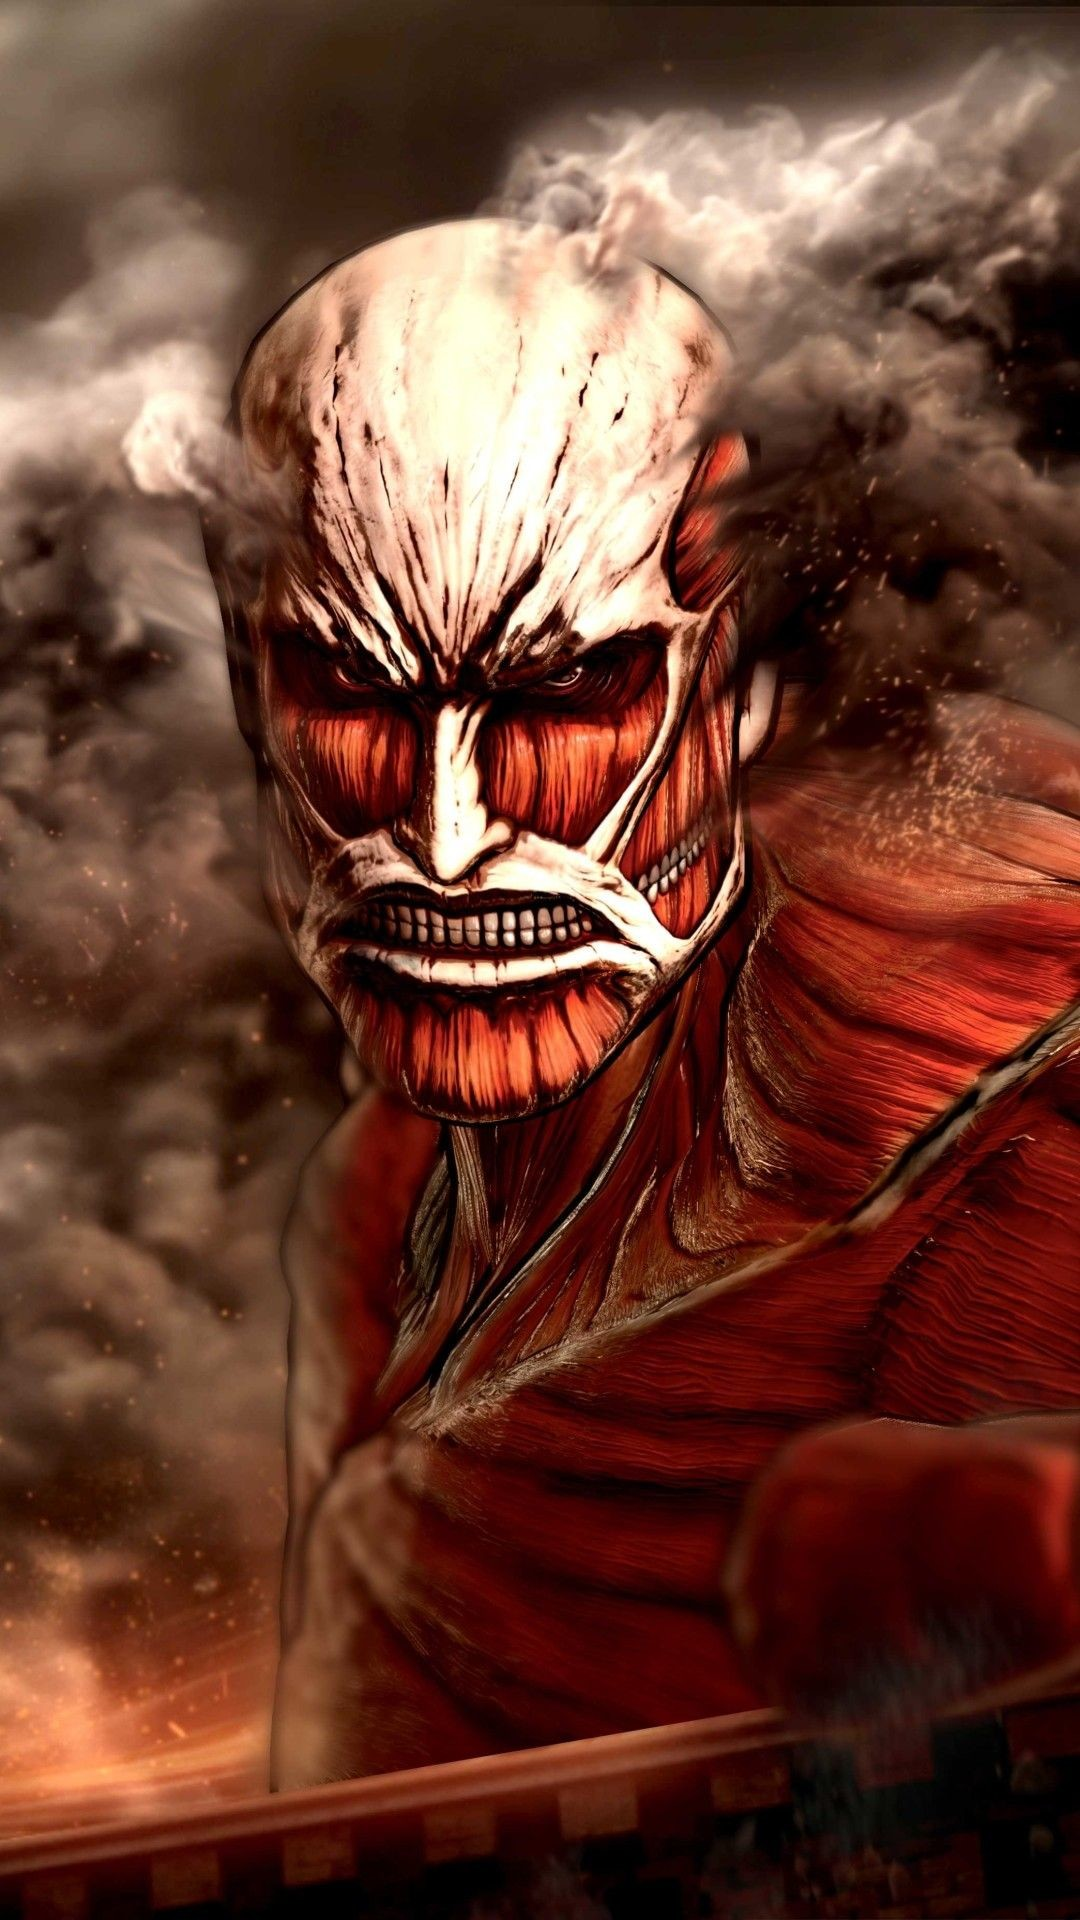 Attack on Titan iOS Wallpaper (76+ images)